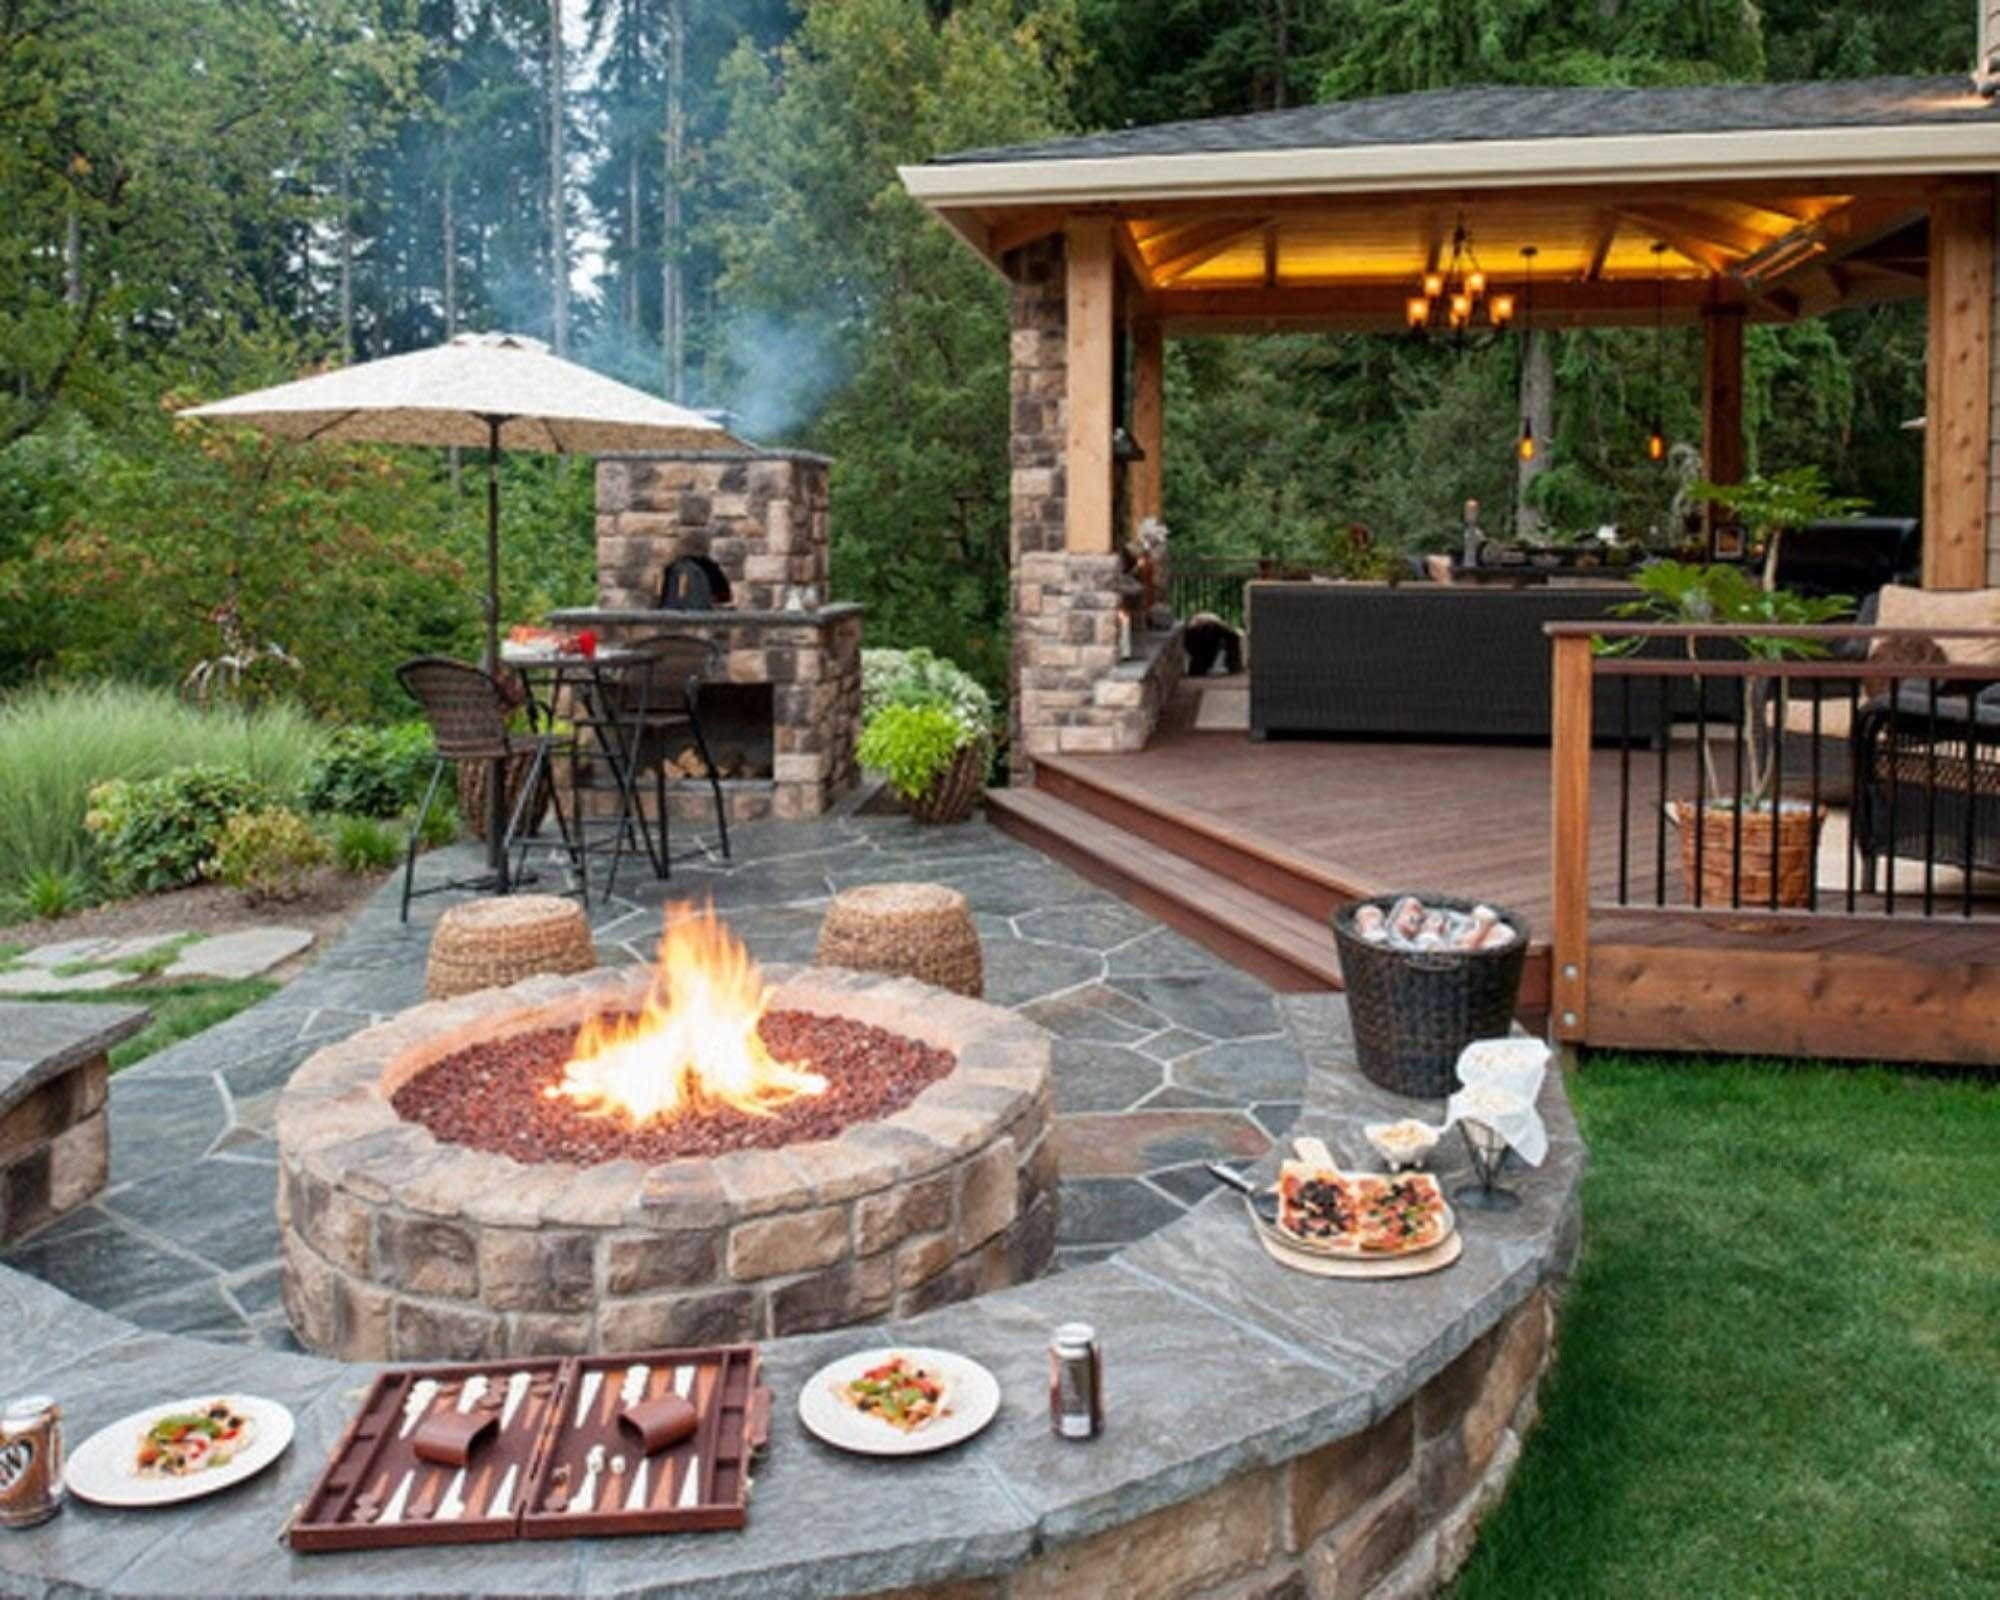 10 Fantastic Outdoor Patio Ideas With Fire Pit outdoor patio ideas with fire collection and beautiful backyard 2020